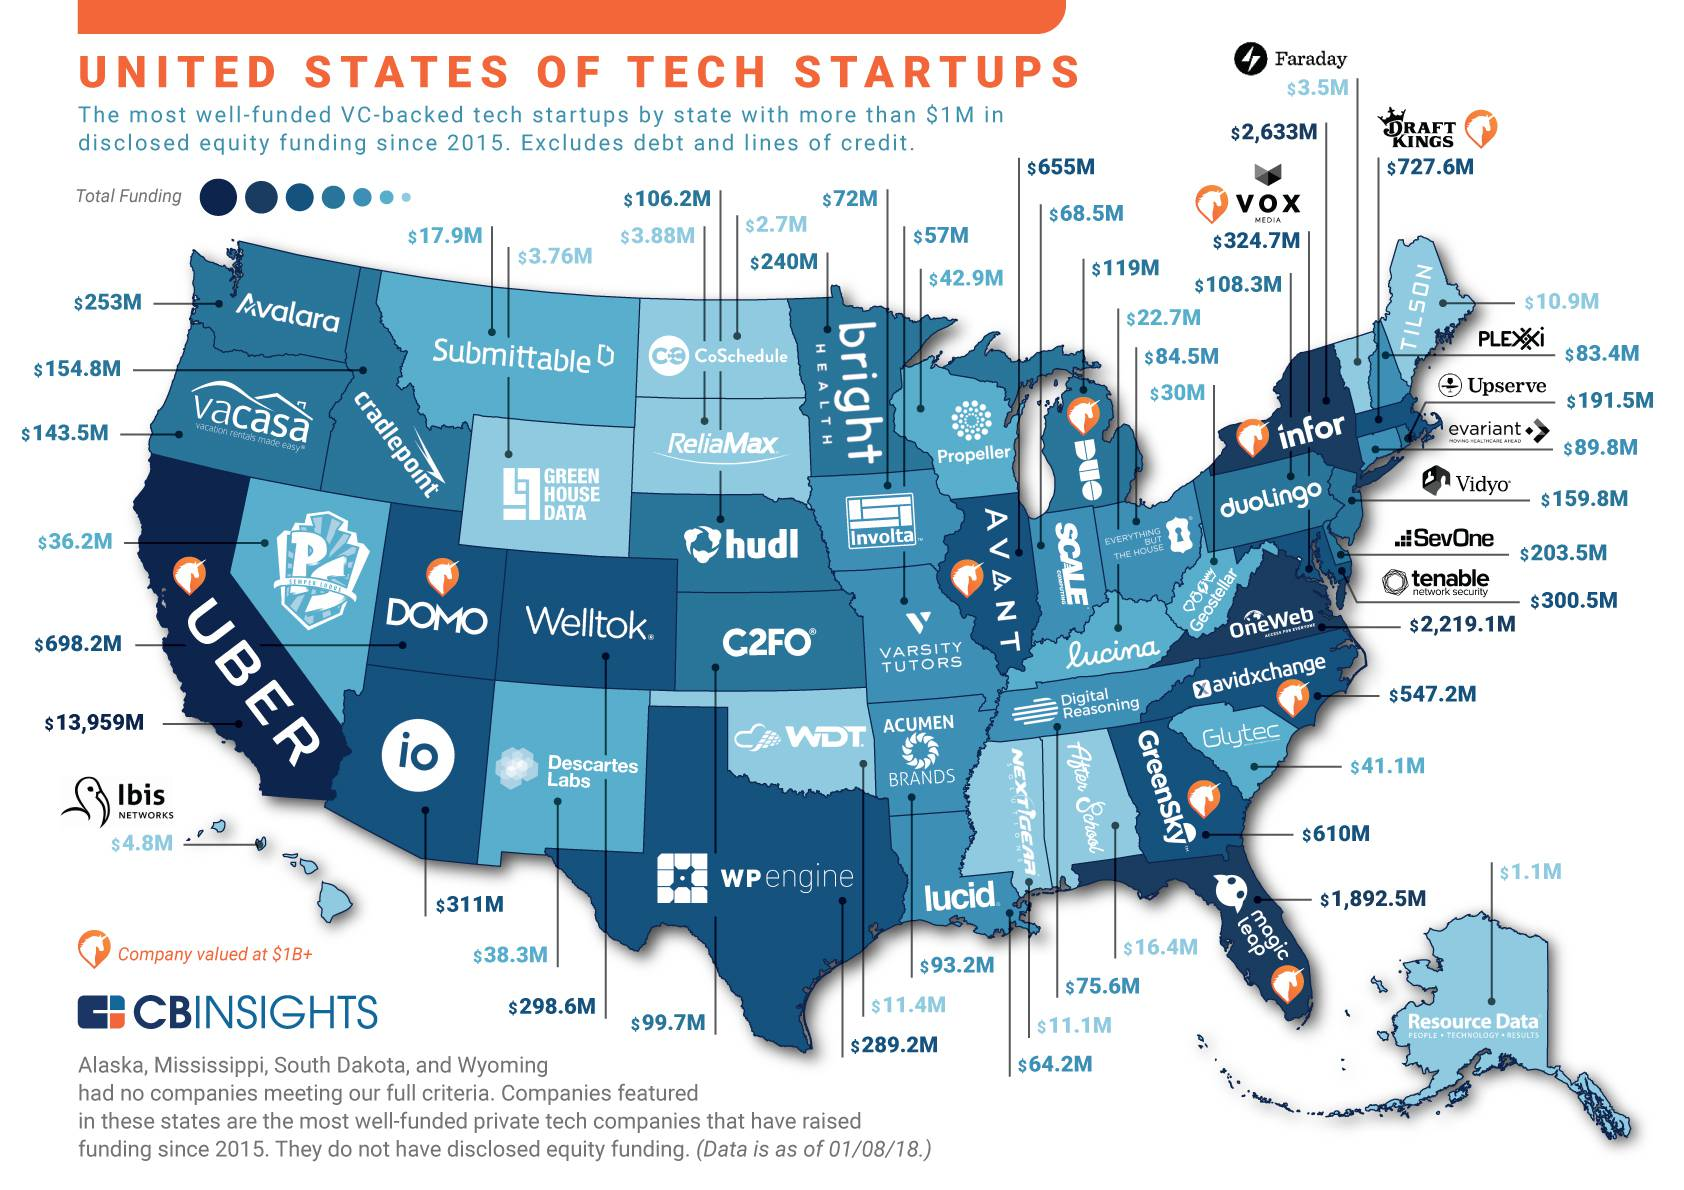 The United States Of Startups: The Most Well-Funded Tech Startup In